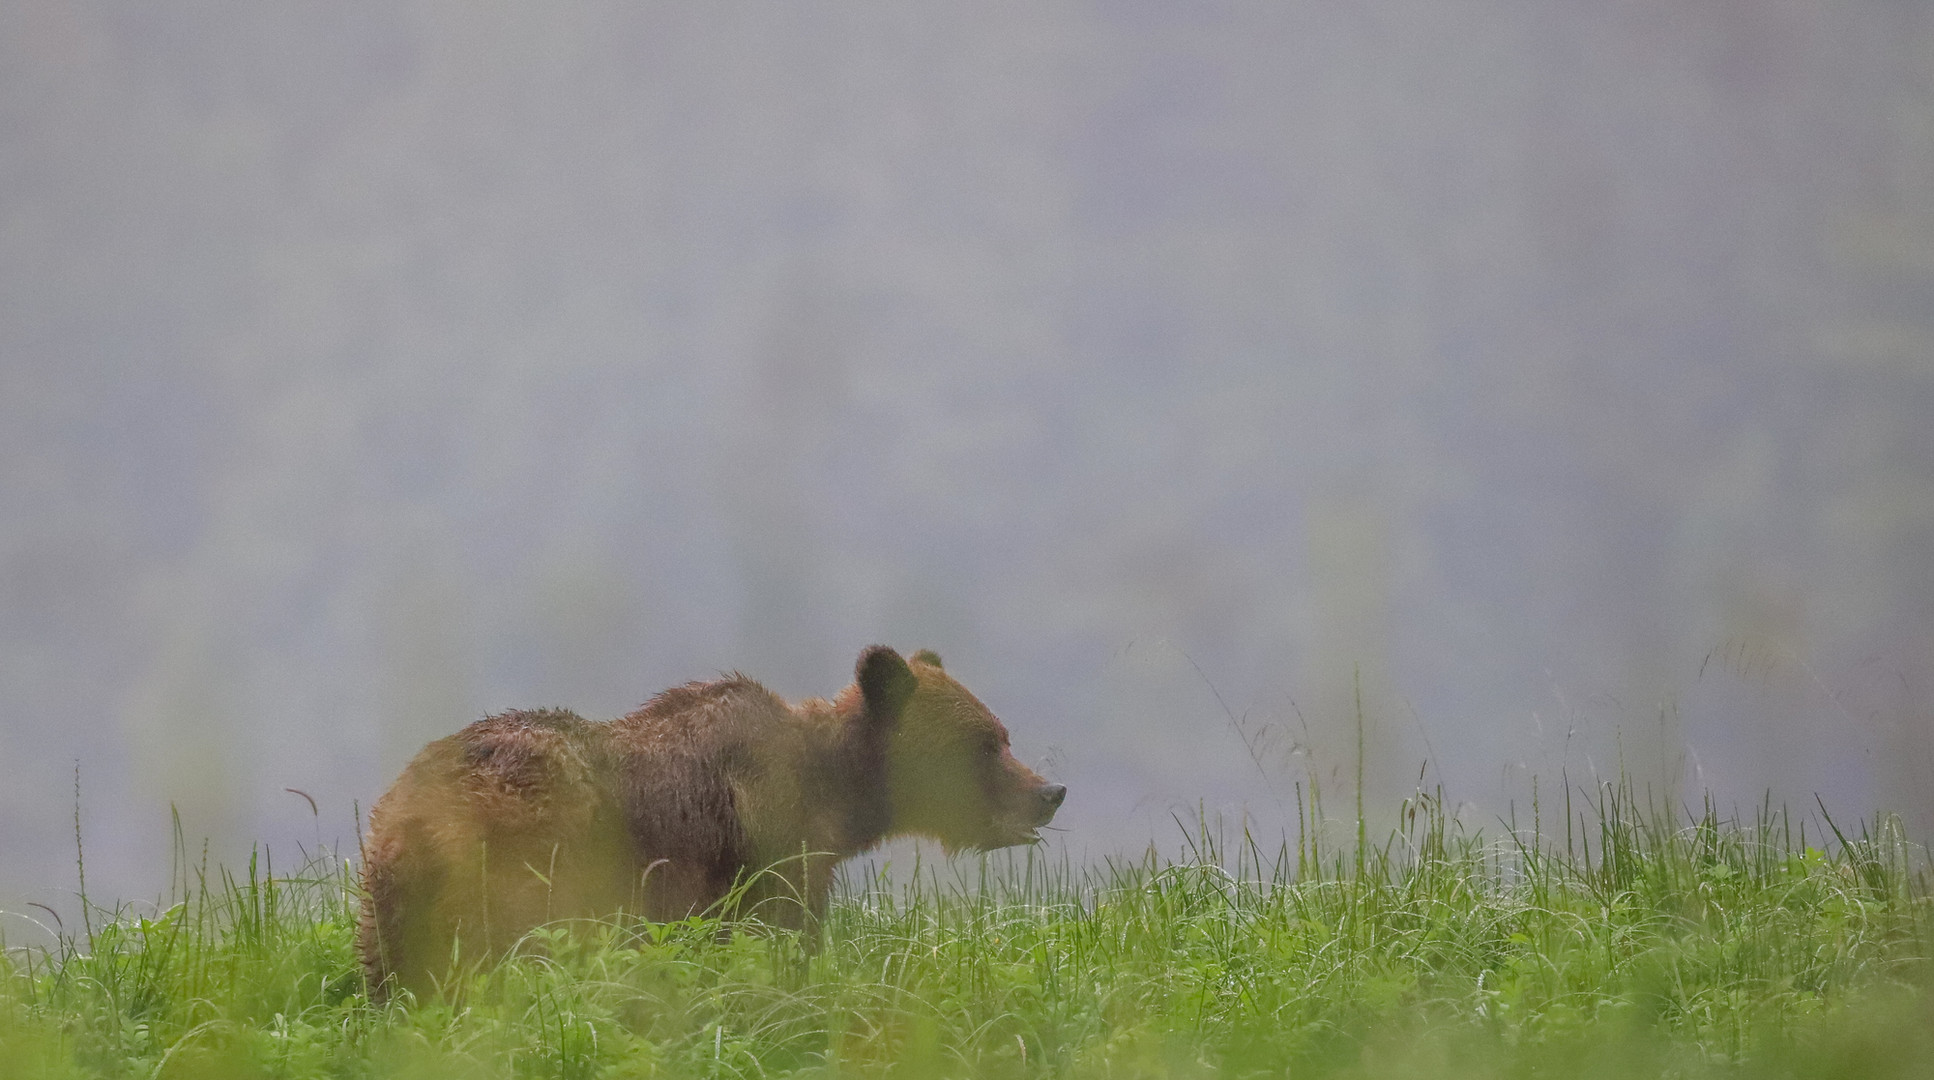 HC the grizzly in a sedge meadow.